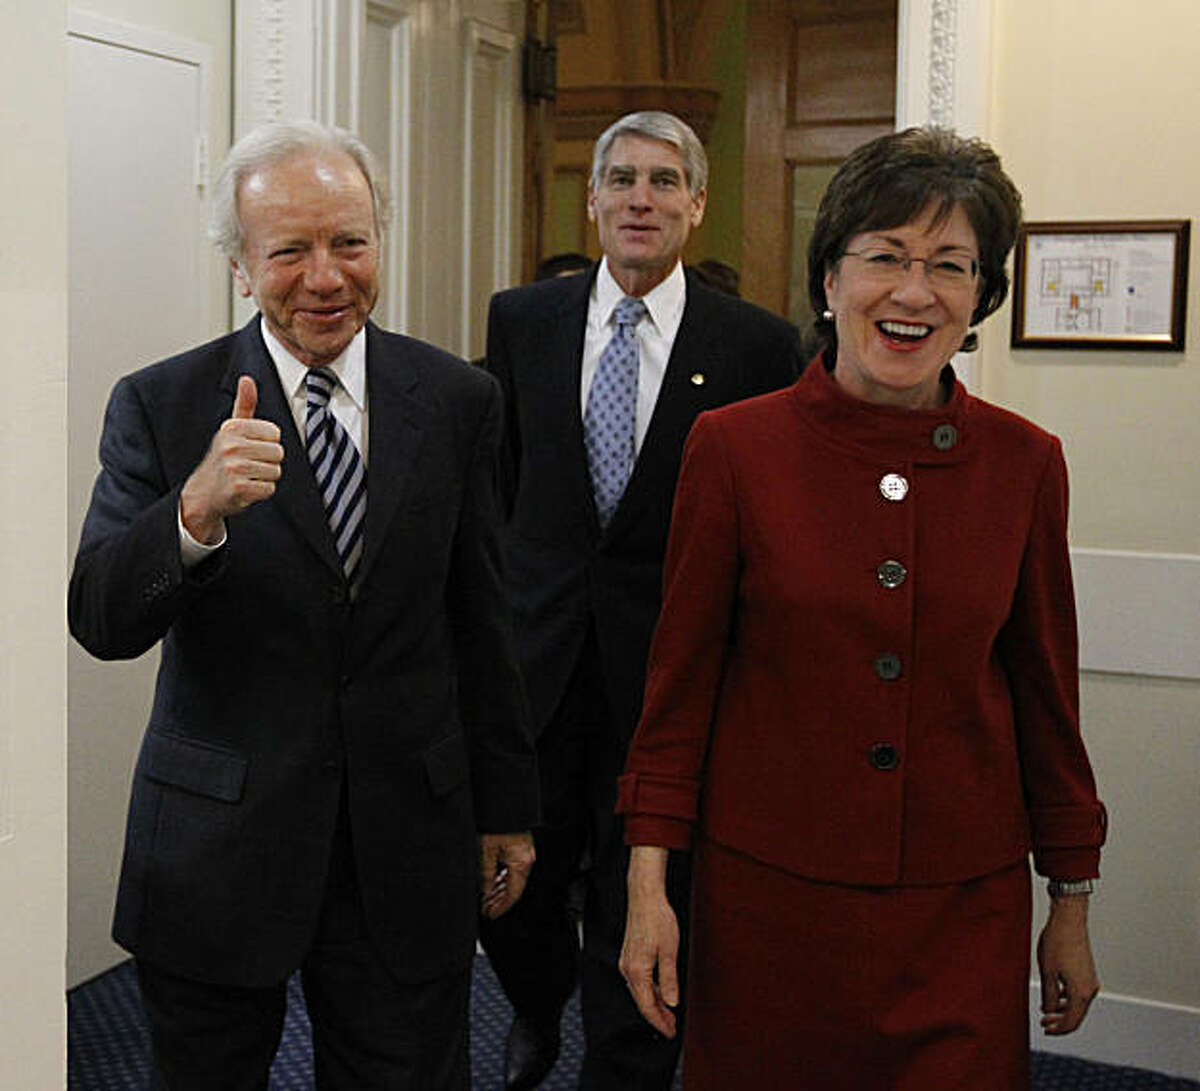 Sen. Joseph Lieberman, I-Conn., left, gives thumbs up, with Sen. Susan Collins, R-Maine., right, and Sen. Mark Udall, D-Colo., as they head into a news conference about the passage of the Don't Ask Don't Tell bill during an unusual Saturday session on Capitol Hill in Washington Saturday, Dec. 18, 2010. In a landmark for gay rights the Senate voted to let gays serve openly in the military, giving President Barack Obama the chance to fulfill a campaign promise and repeal the 17-year policy.